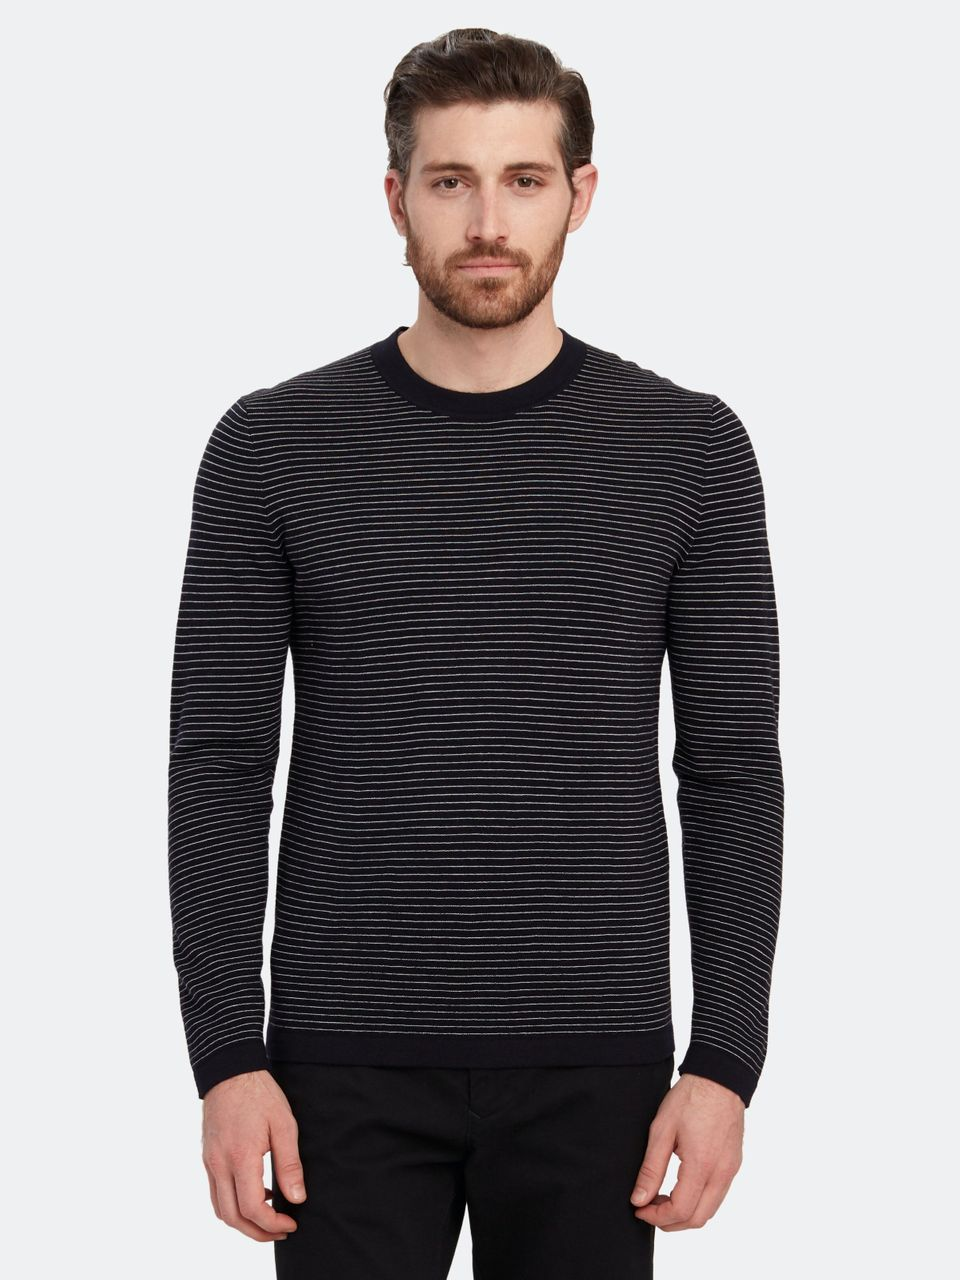 If You're A Nordstrom Fan, You Should Check Out This Verishop Sale 12